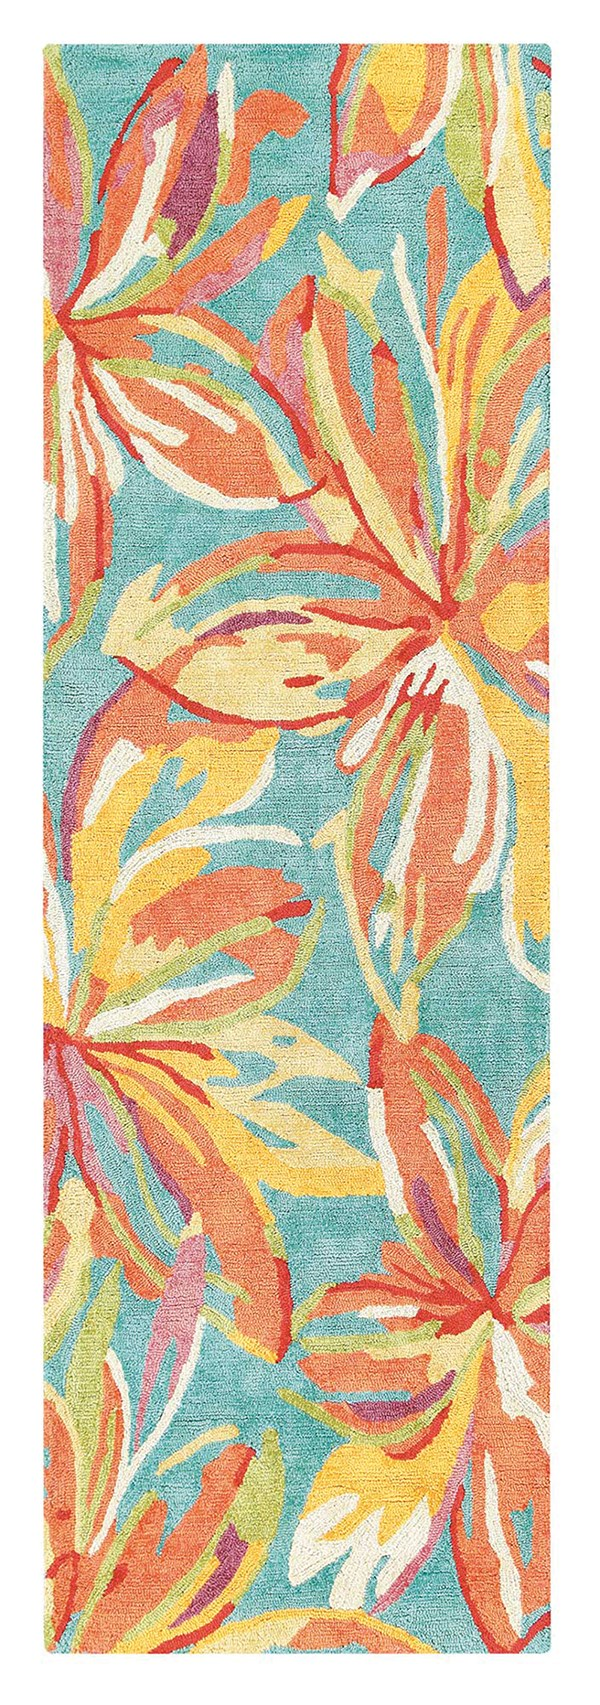 Yellow (10304) Floral / Botanical Area Rug